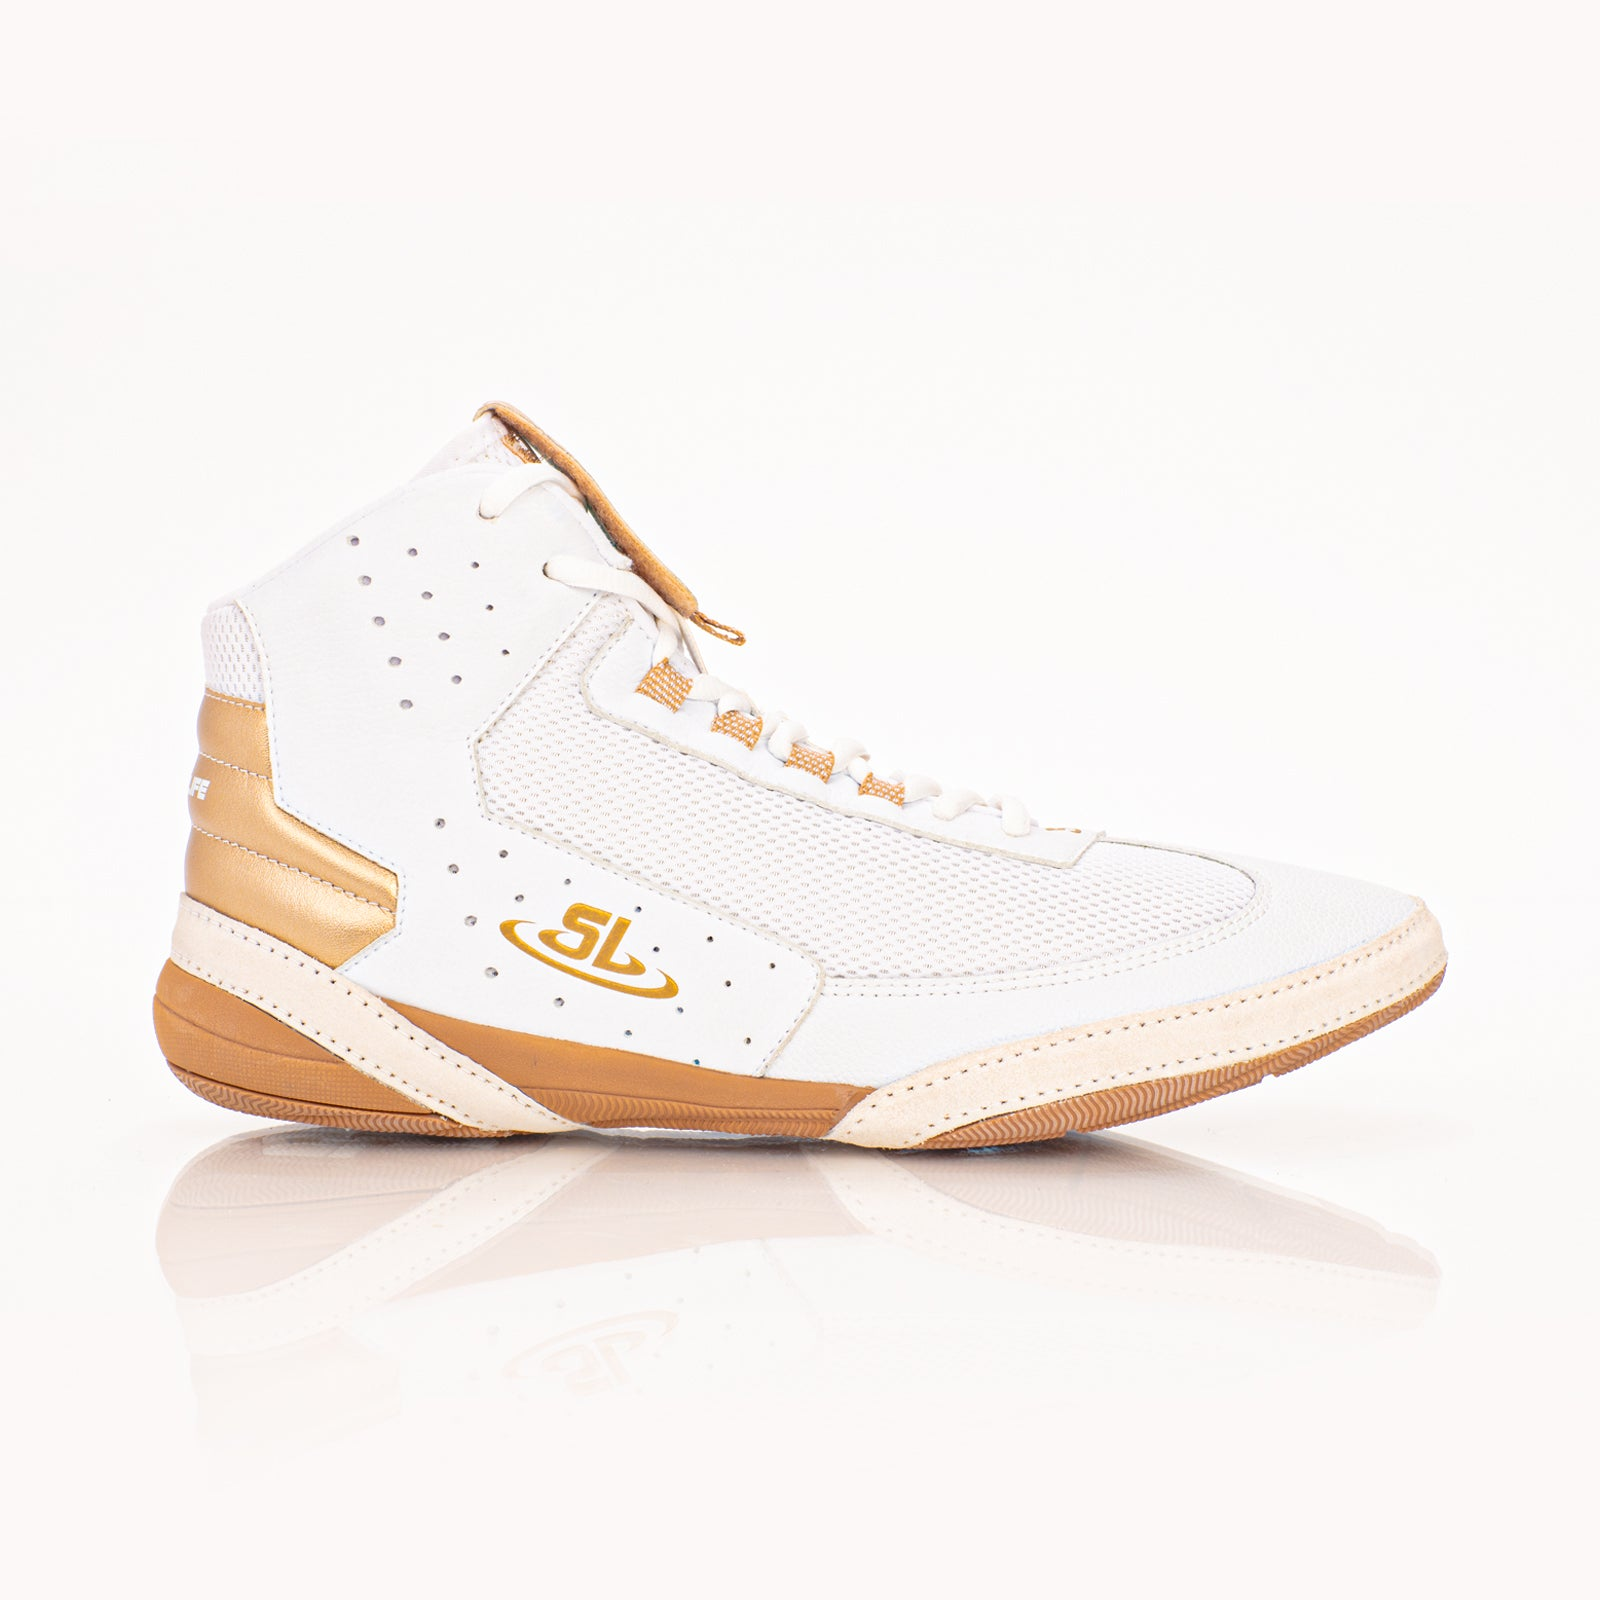 Ascend One - Youth Bo Nickal Signature Model - White/Gold